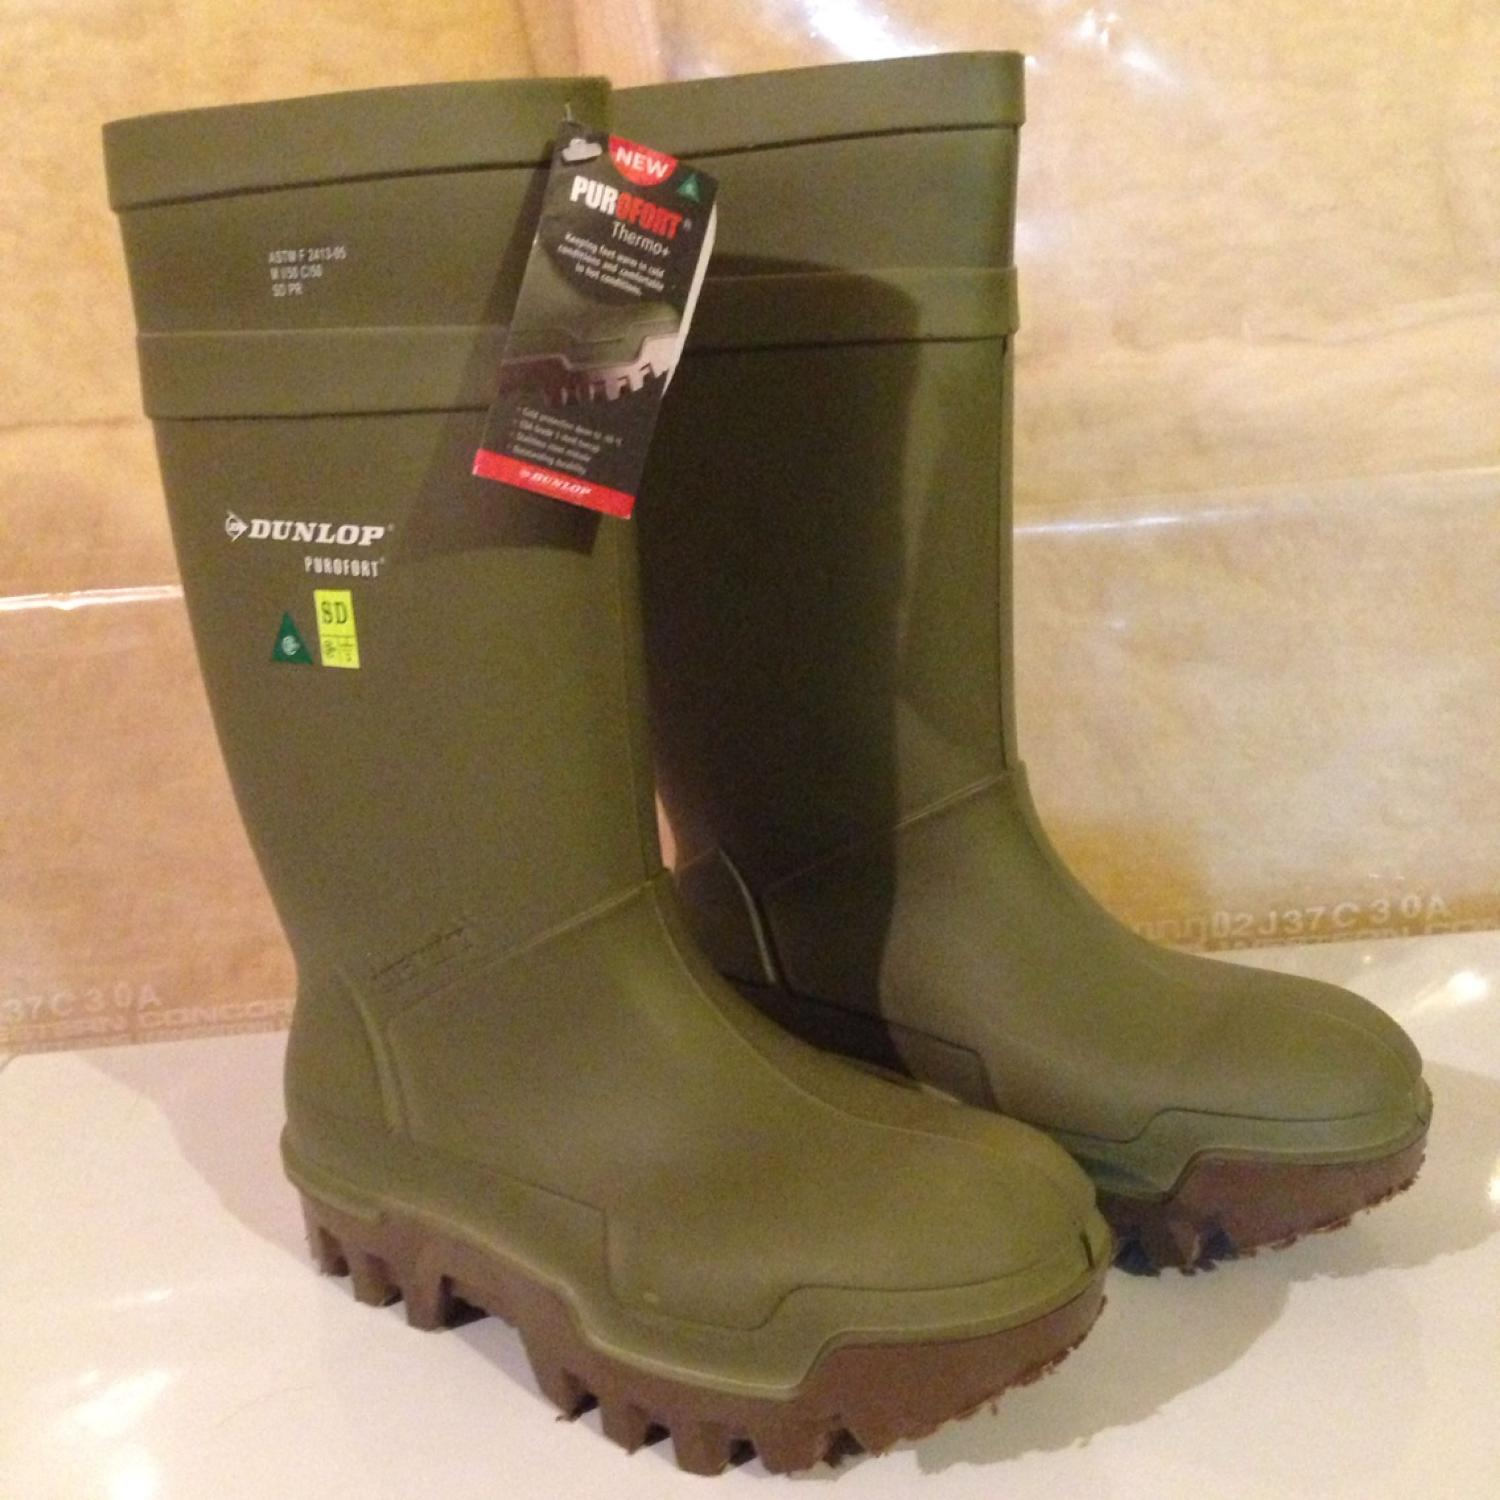 bc7370d5c99 Dunlop Purofort Thermo+ Steel Toe Rubber Boots - NWT